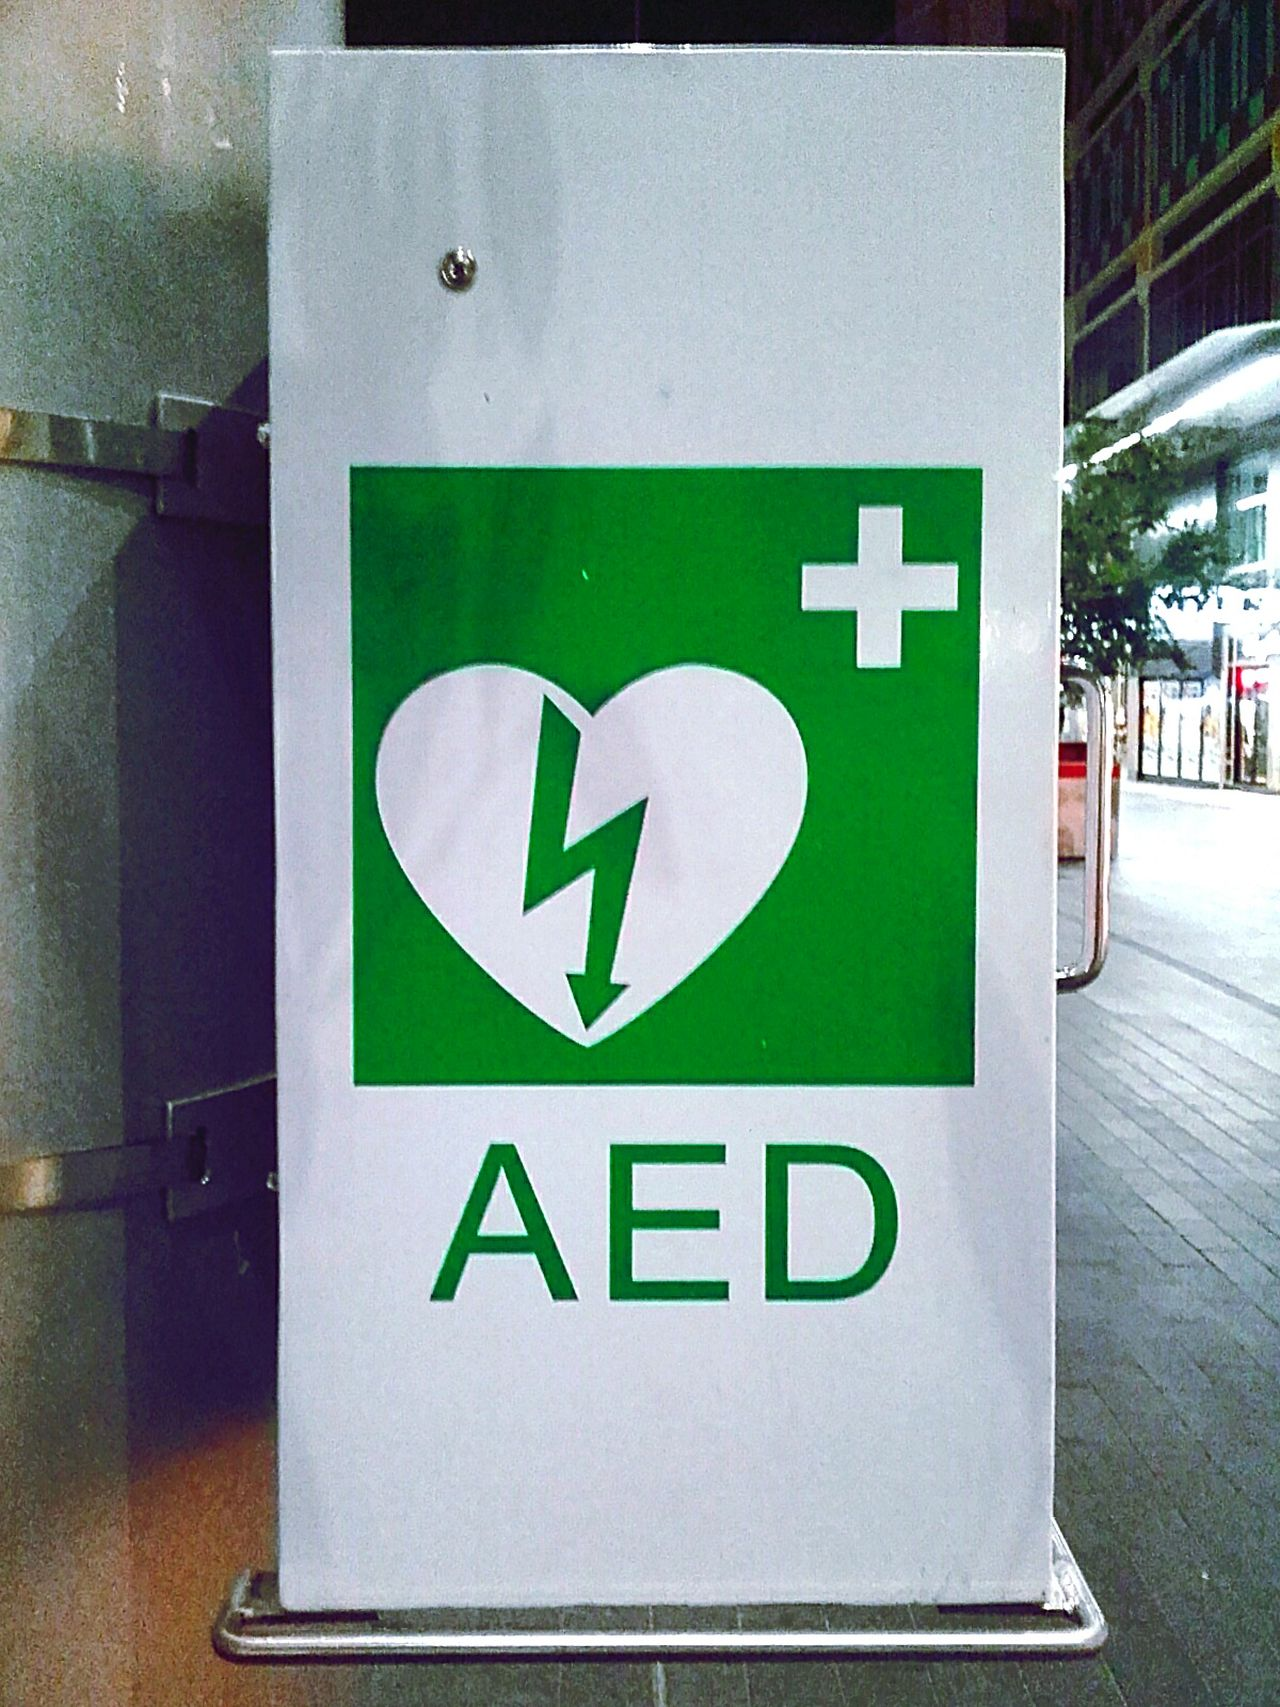 AED Defibrillator Station AED Station Public AED Station Defibrillator AEDstation PublicDefibrillatorStation Emergency Equipment Sign Signage Signs Signs_collection Signstalkers Sign Hunters SignHunters SignSignEverywhereASign Signs, Signs, & More Signs SignsSignsAndMoreSigns SIGN. Signs & More Signs First Aid Sign Signs And Symbols AutomatedExternalDefibrillator Sign, Sign, Everywhere A Sign Automated External Defibrillator